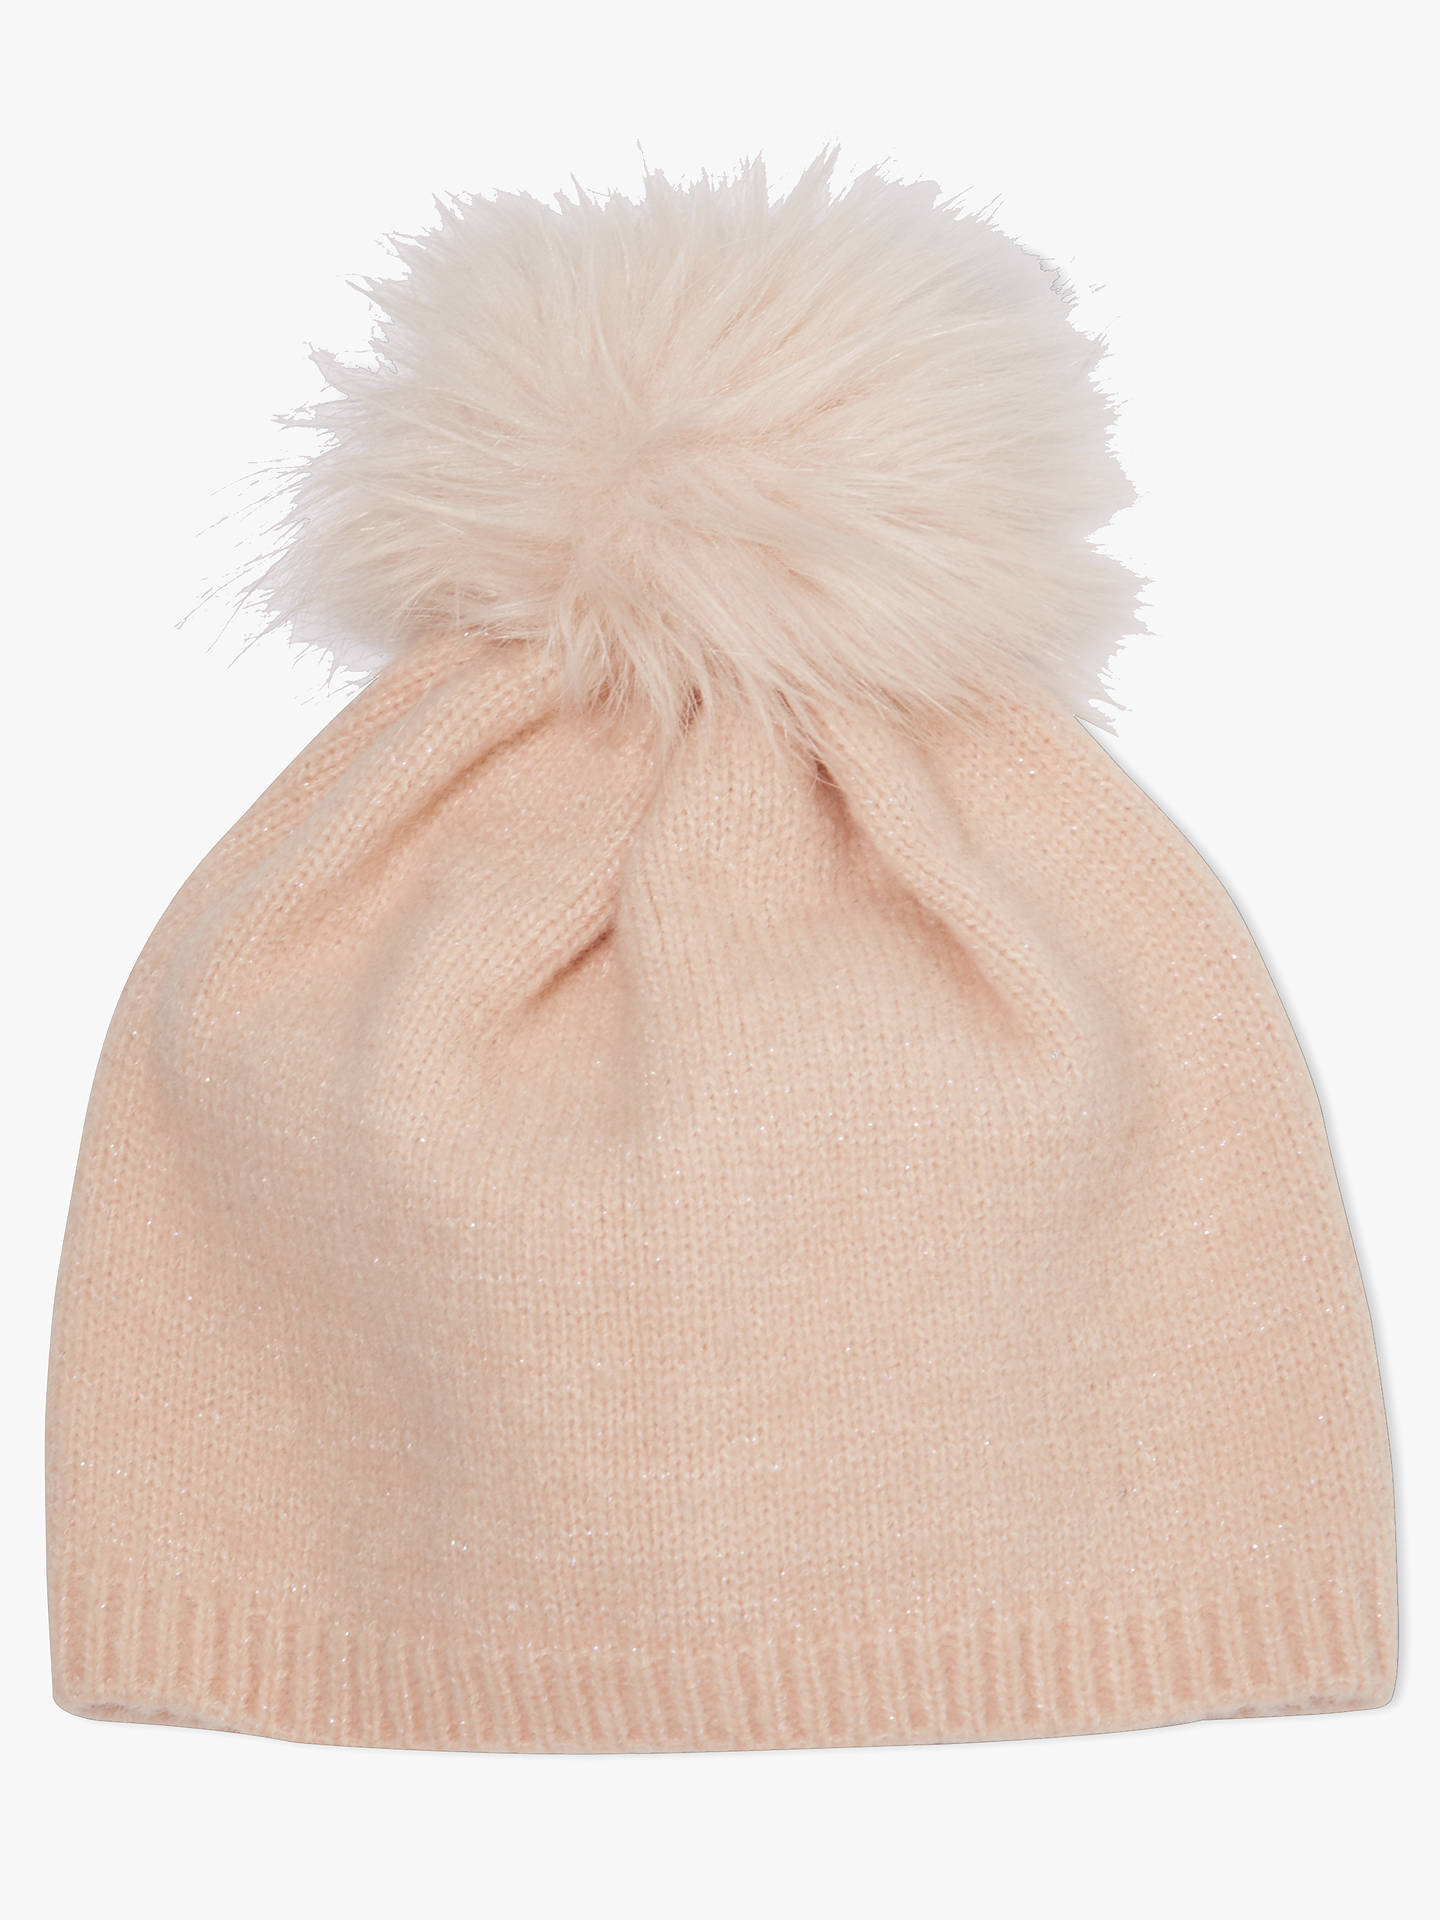 Buy John Lewis & Partners Children's Glitter Beanie Hat, Pink, 3-5 years Online at johnlewis.com